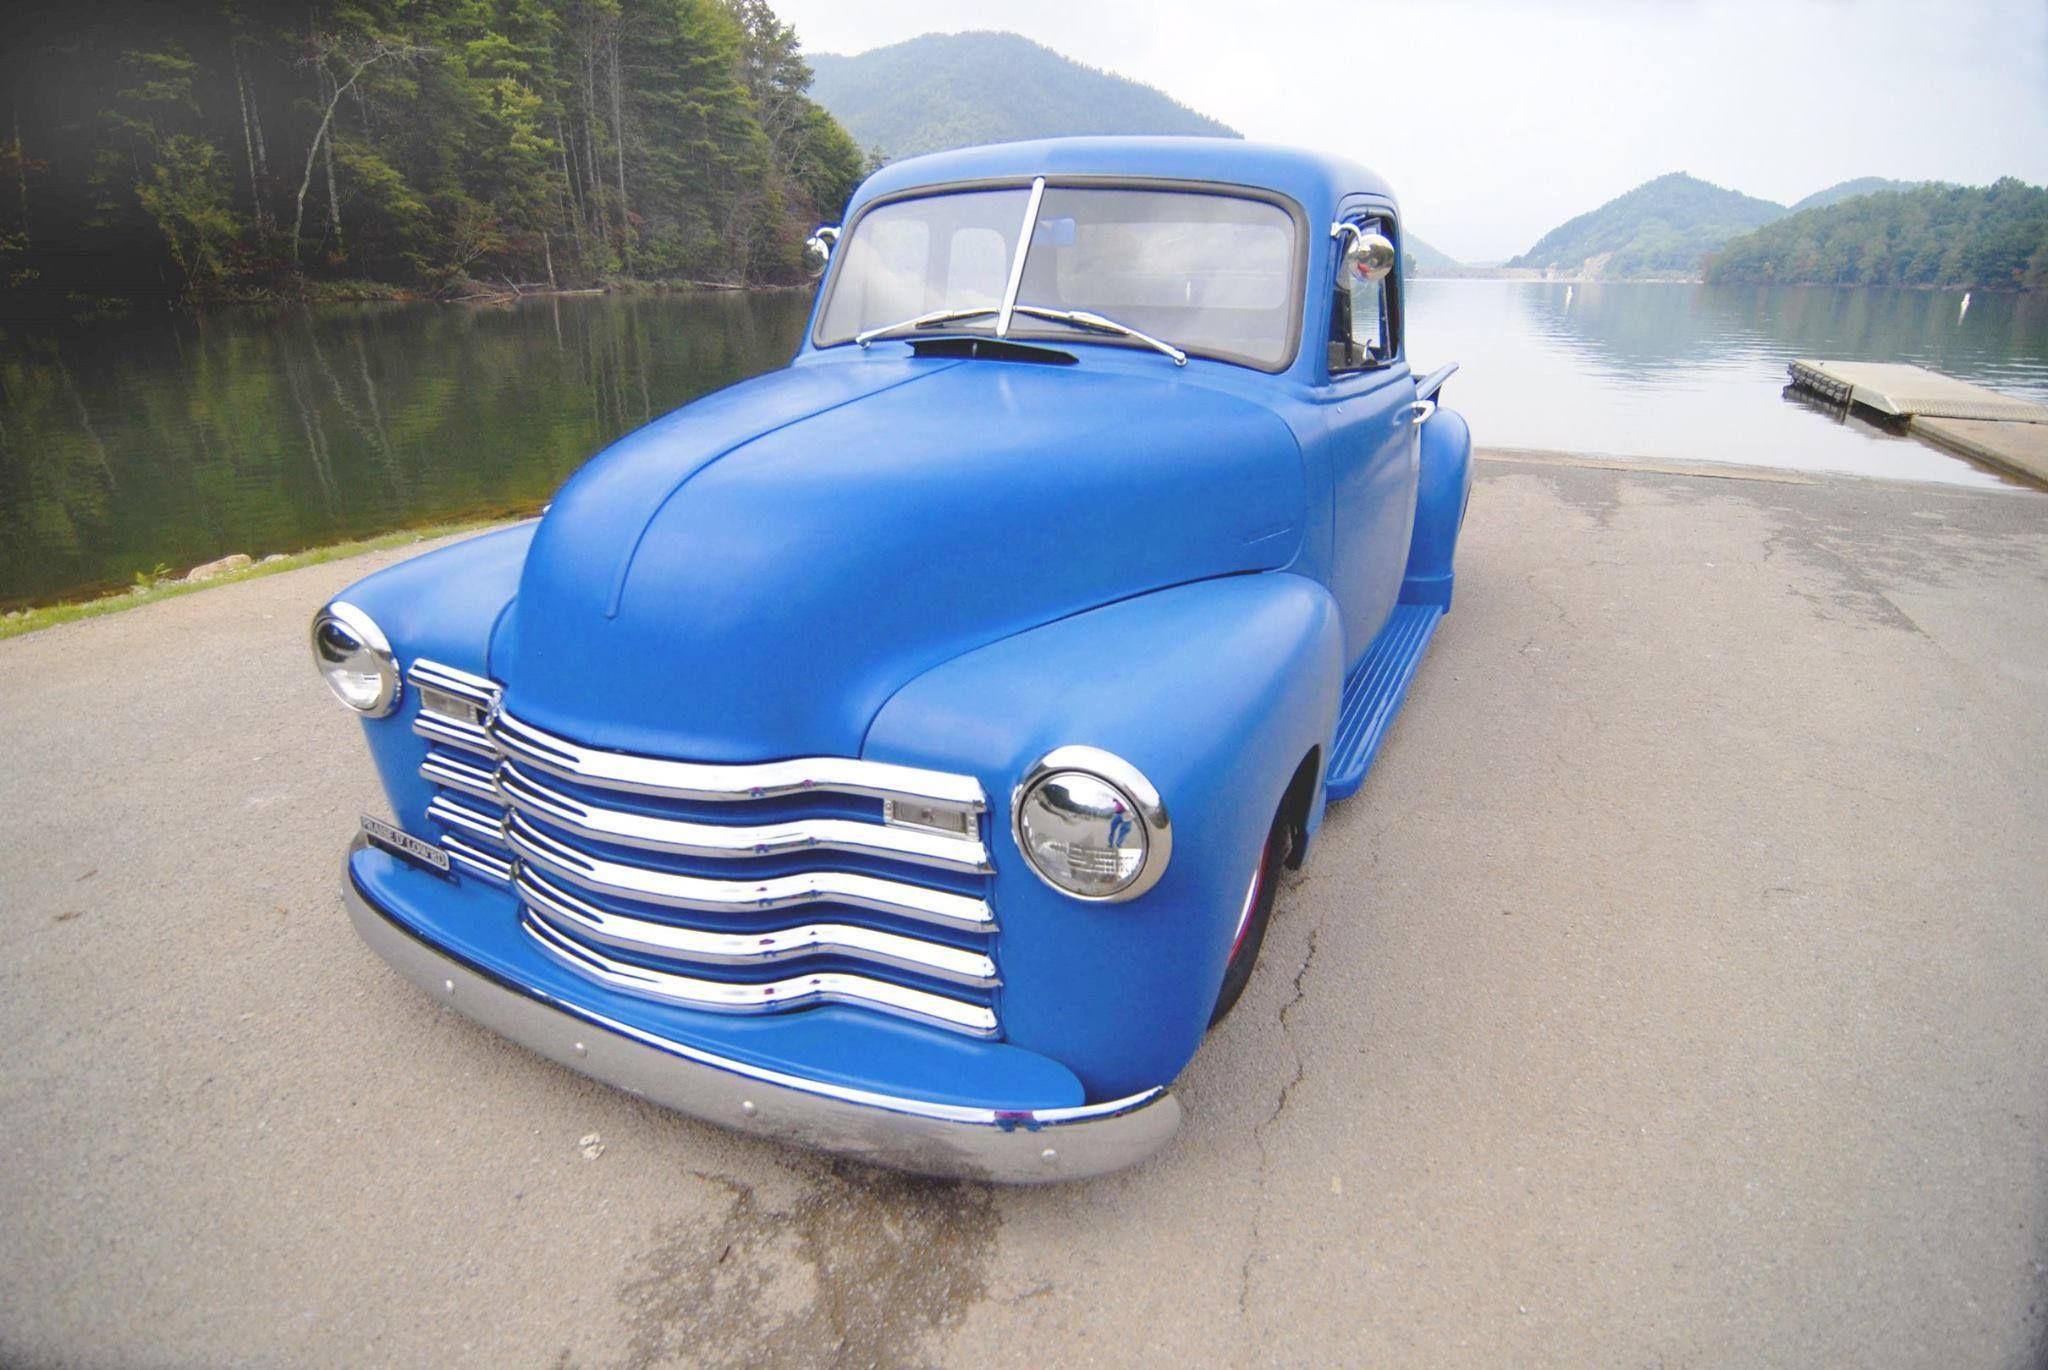 Chev Chevrolet Chevy Advanced Design pickup truck in a beautiful ...